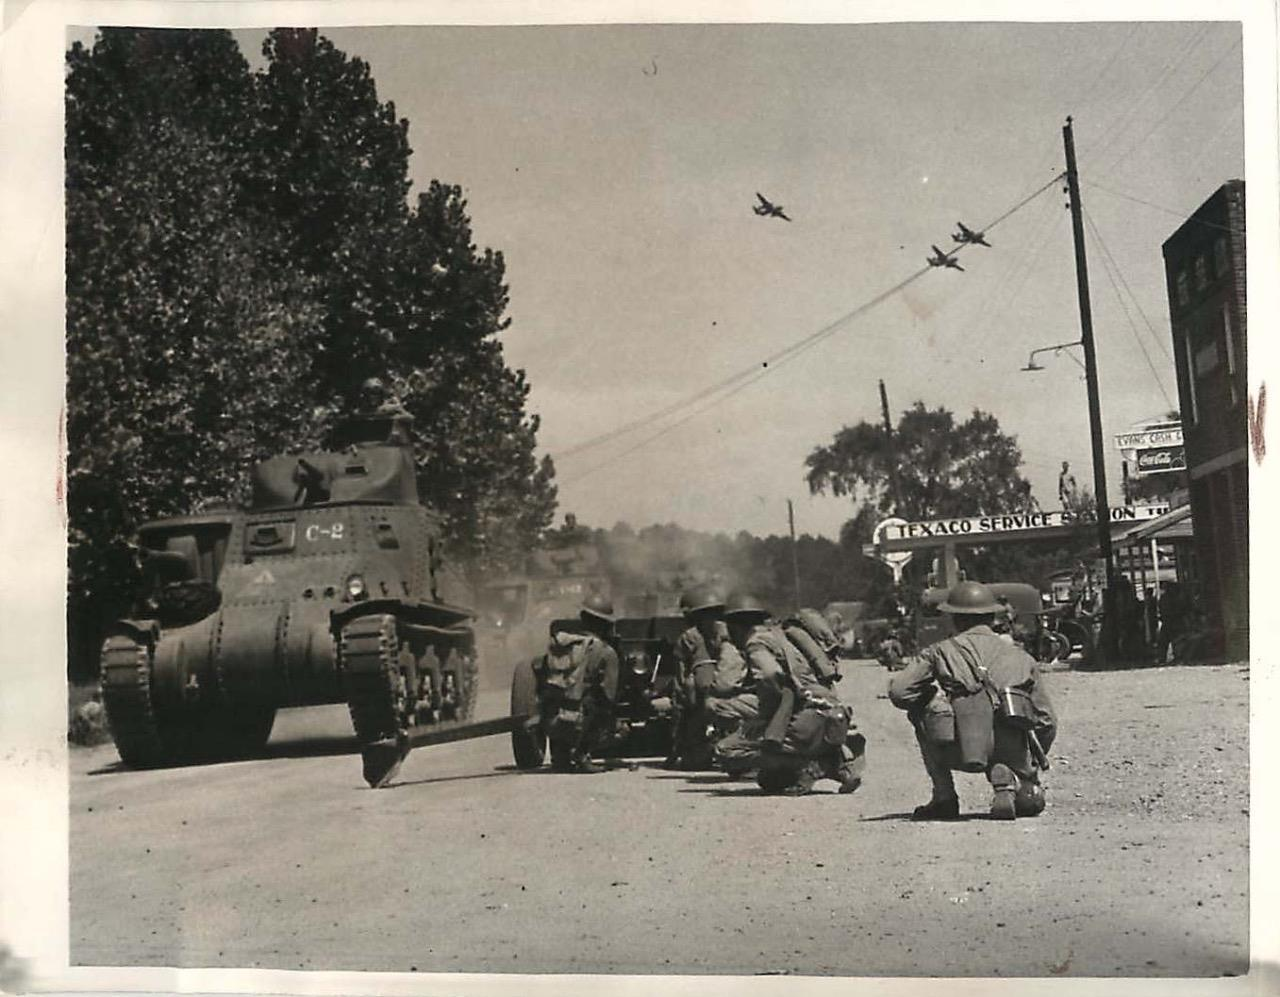 1st Armored Division M3 Lees, supported by A-20 Havocs, blast their way past defending 37mm anti-tanks guns near Castor,Louisiana, 14 Sep 1941.